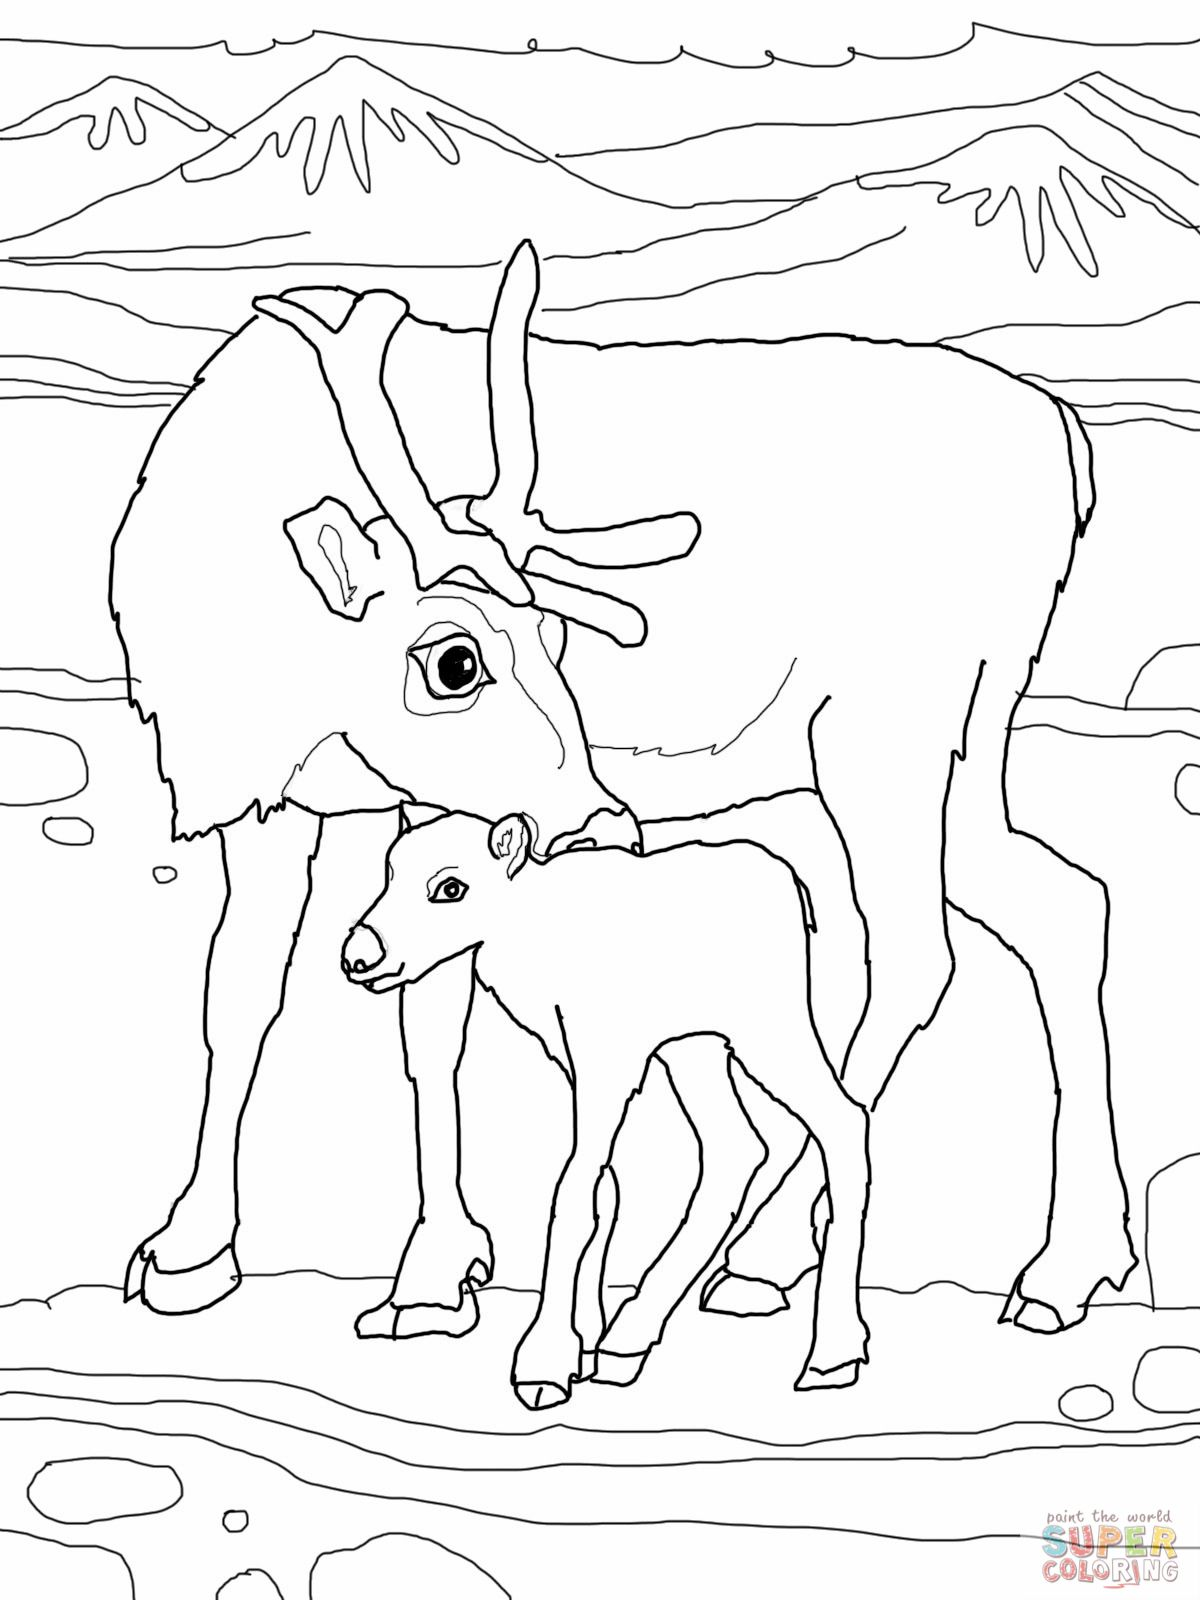 Mother Reindeer With Baby Deer Coloring Picture With